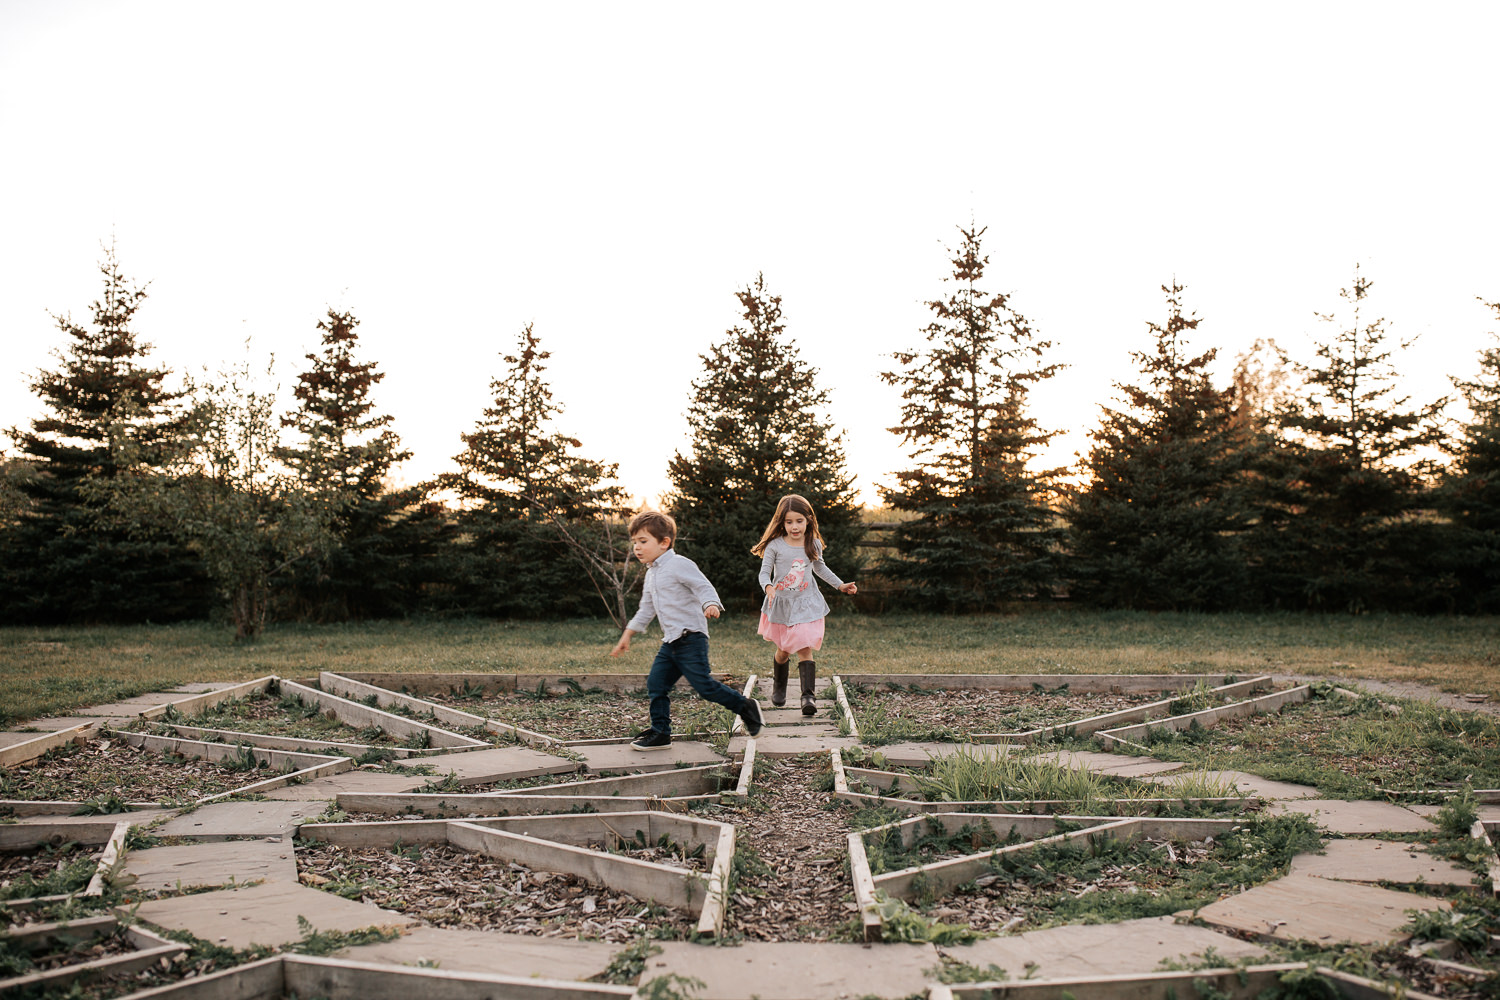 4 year old boy and 5 year old girl both with dark hair running through maze on ground as sun sets behind them - York Region Lifestyle Photos